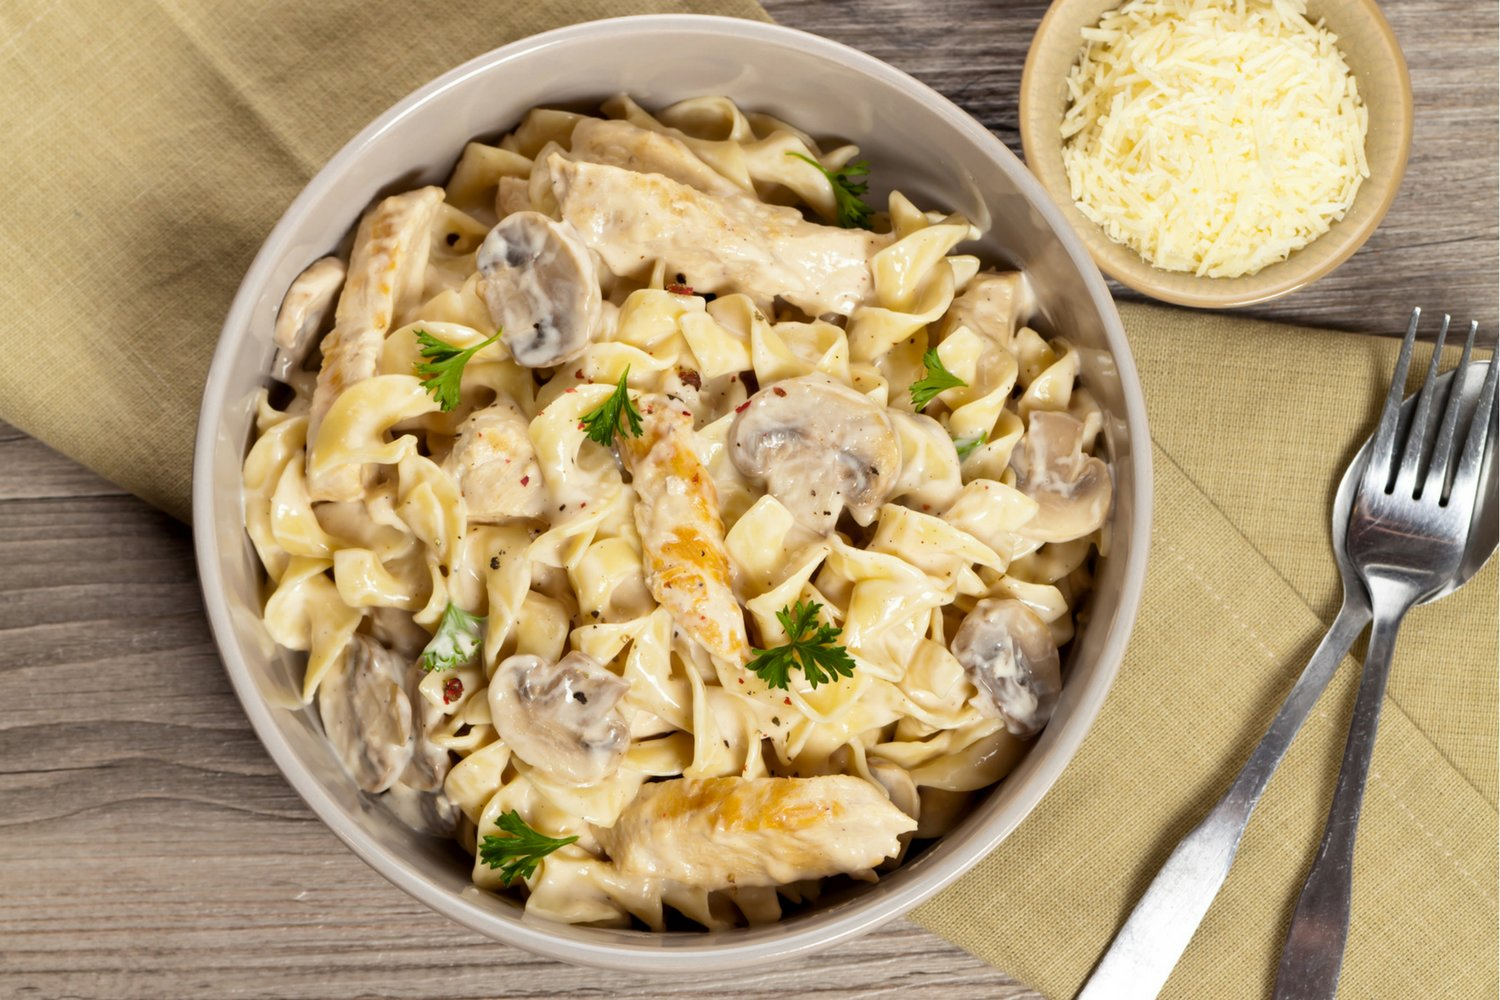 One Pot Creamy Chicken And Mushroom Pasta That Comes Together In Less Than Thirty Minutes